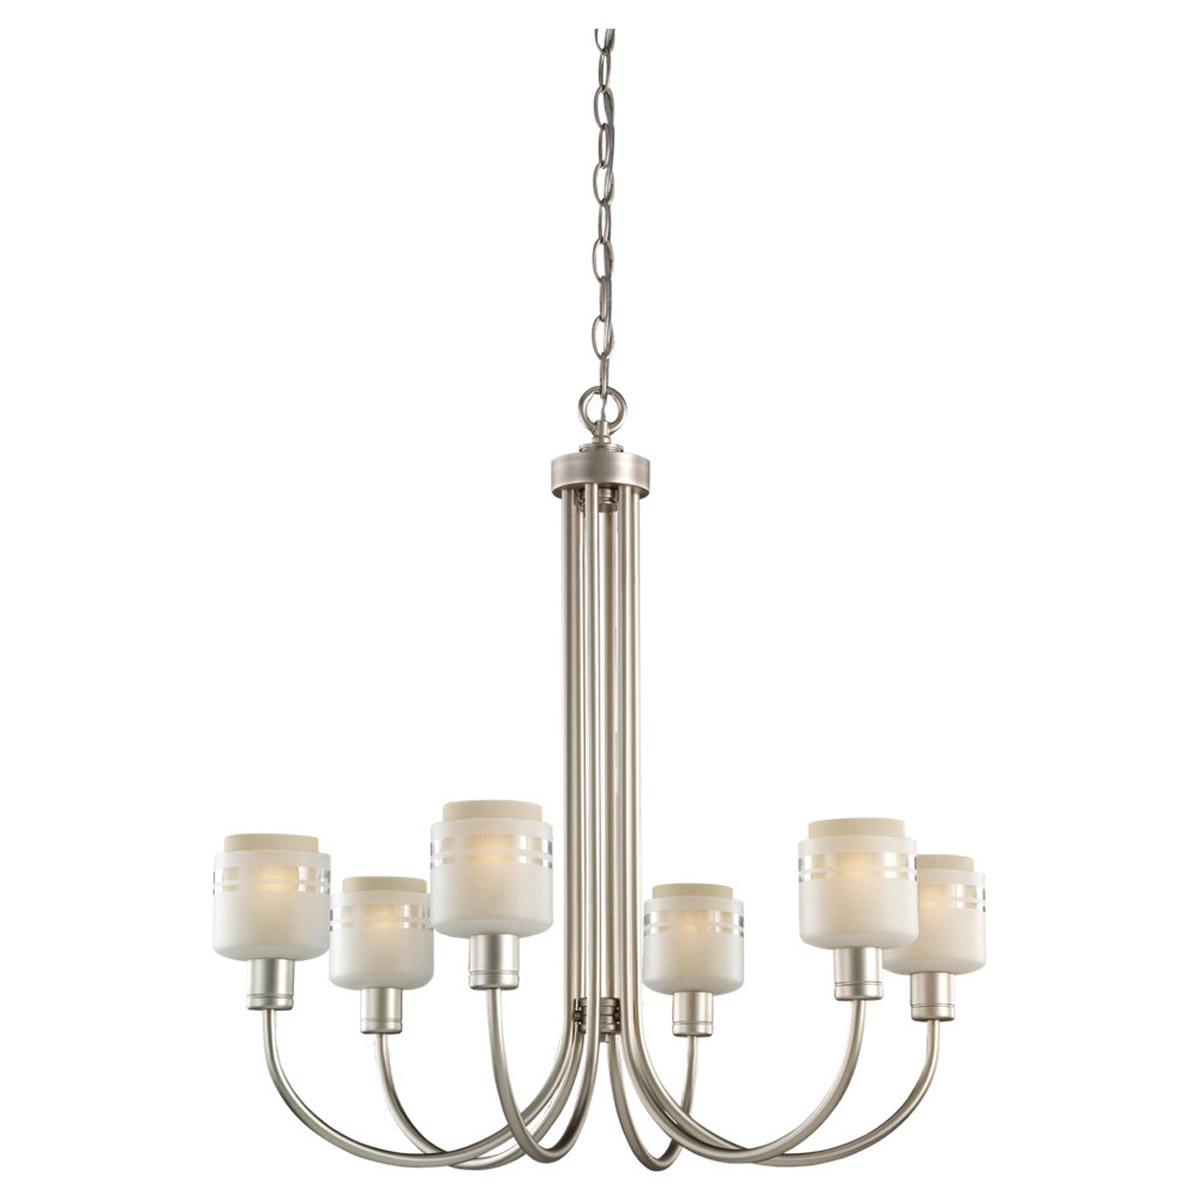 Sea Gull Lighting Groove 6 Light Chandelier in Golden Pewter 31732-853 photo